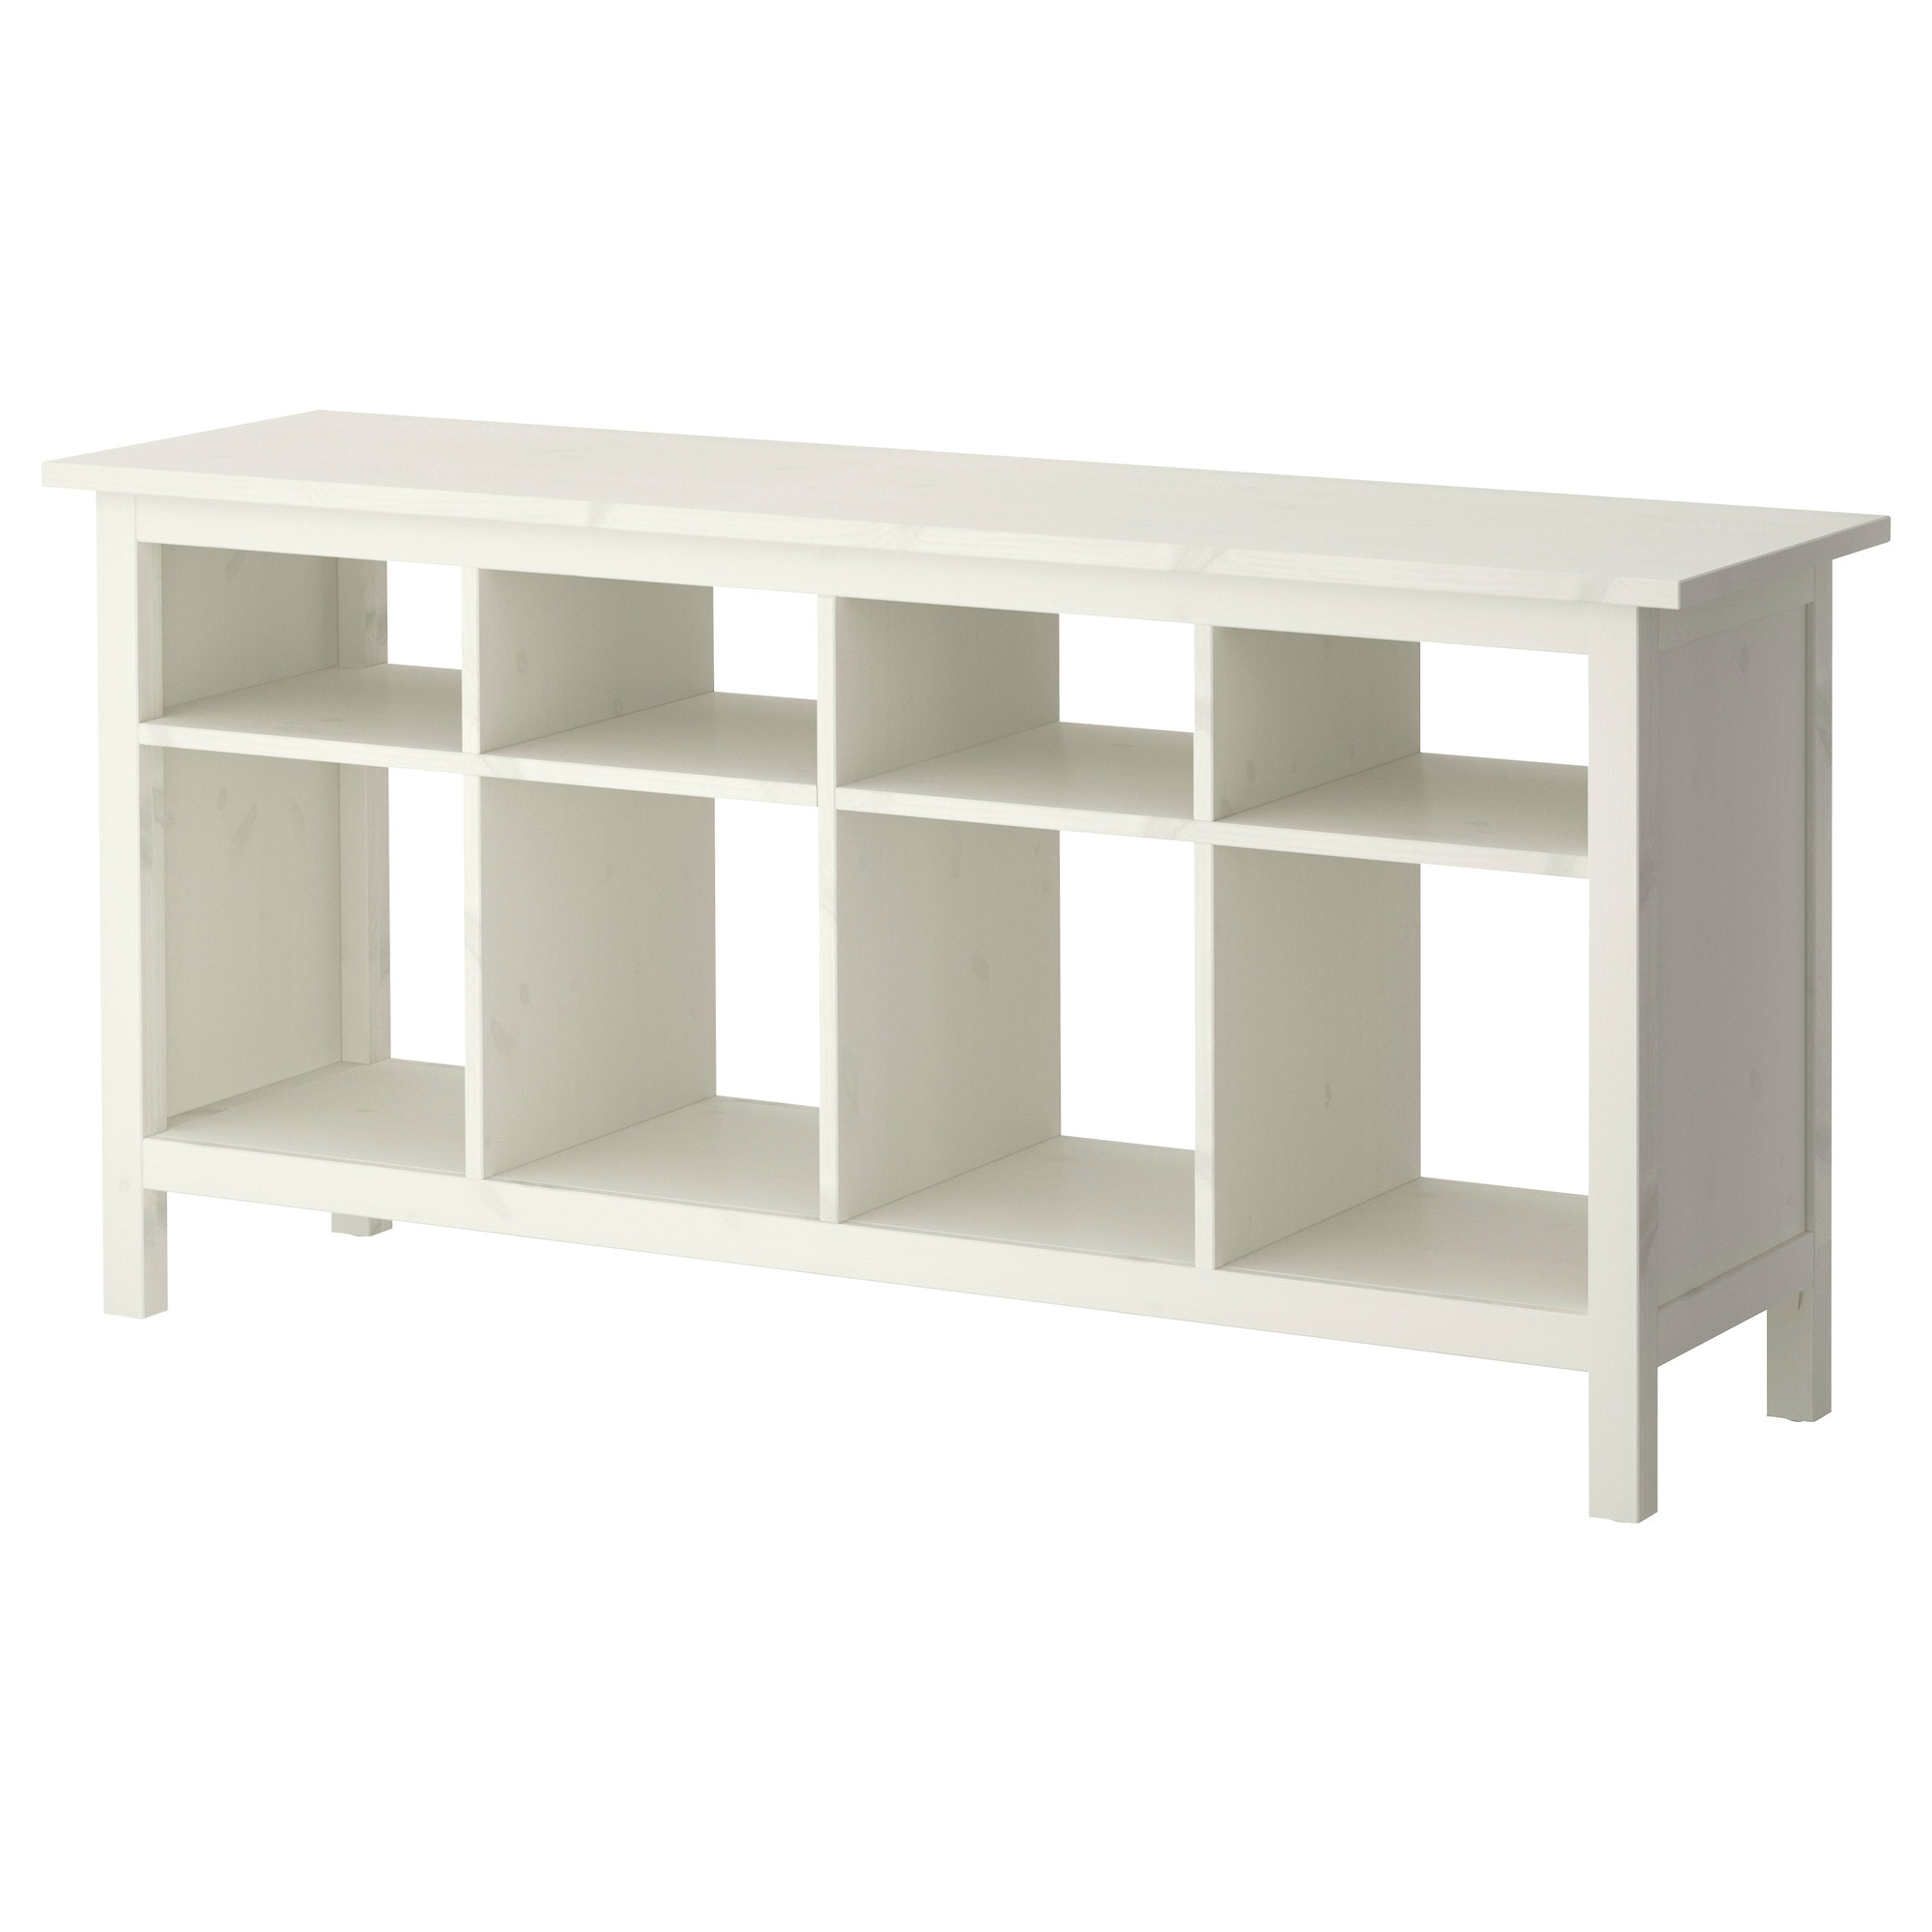 Gentil HEMNES Console Table   White Stain   IKEA